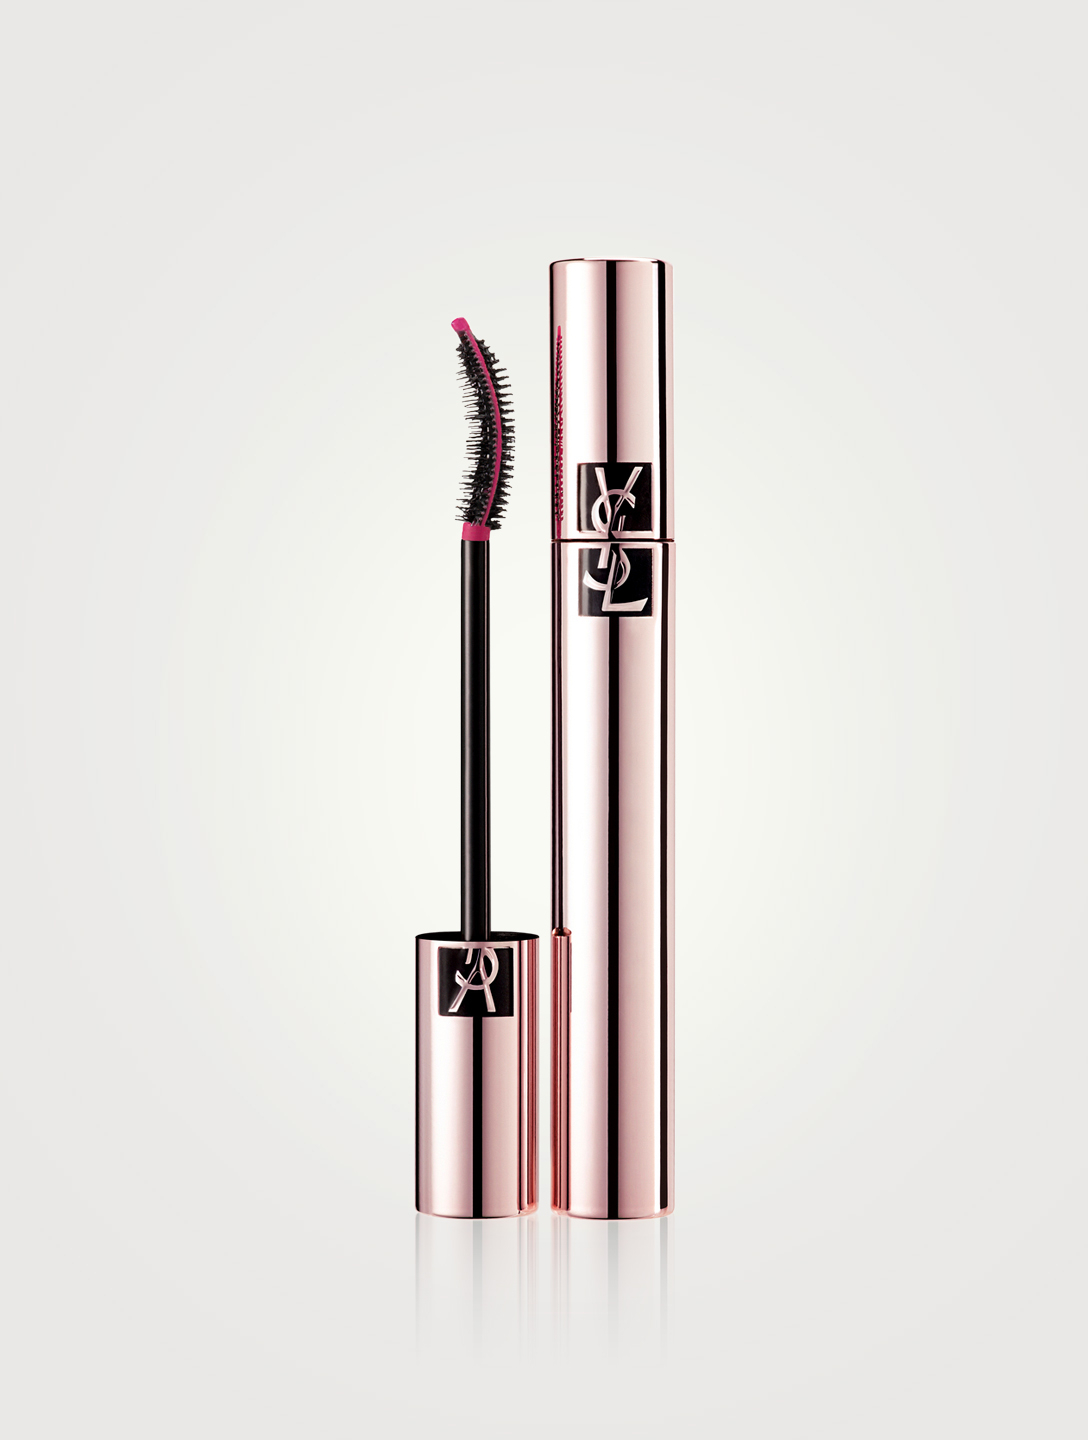 YVES SAINT LAURENT Mascara Volume Effet Faux Cils The Curler Beauty Black